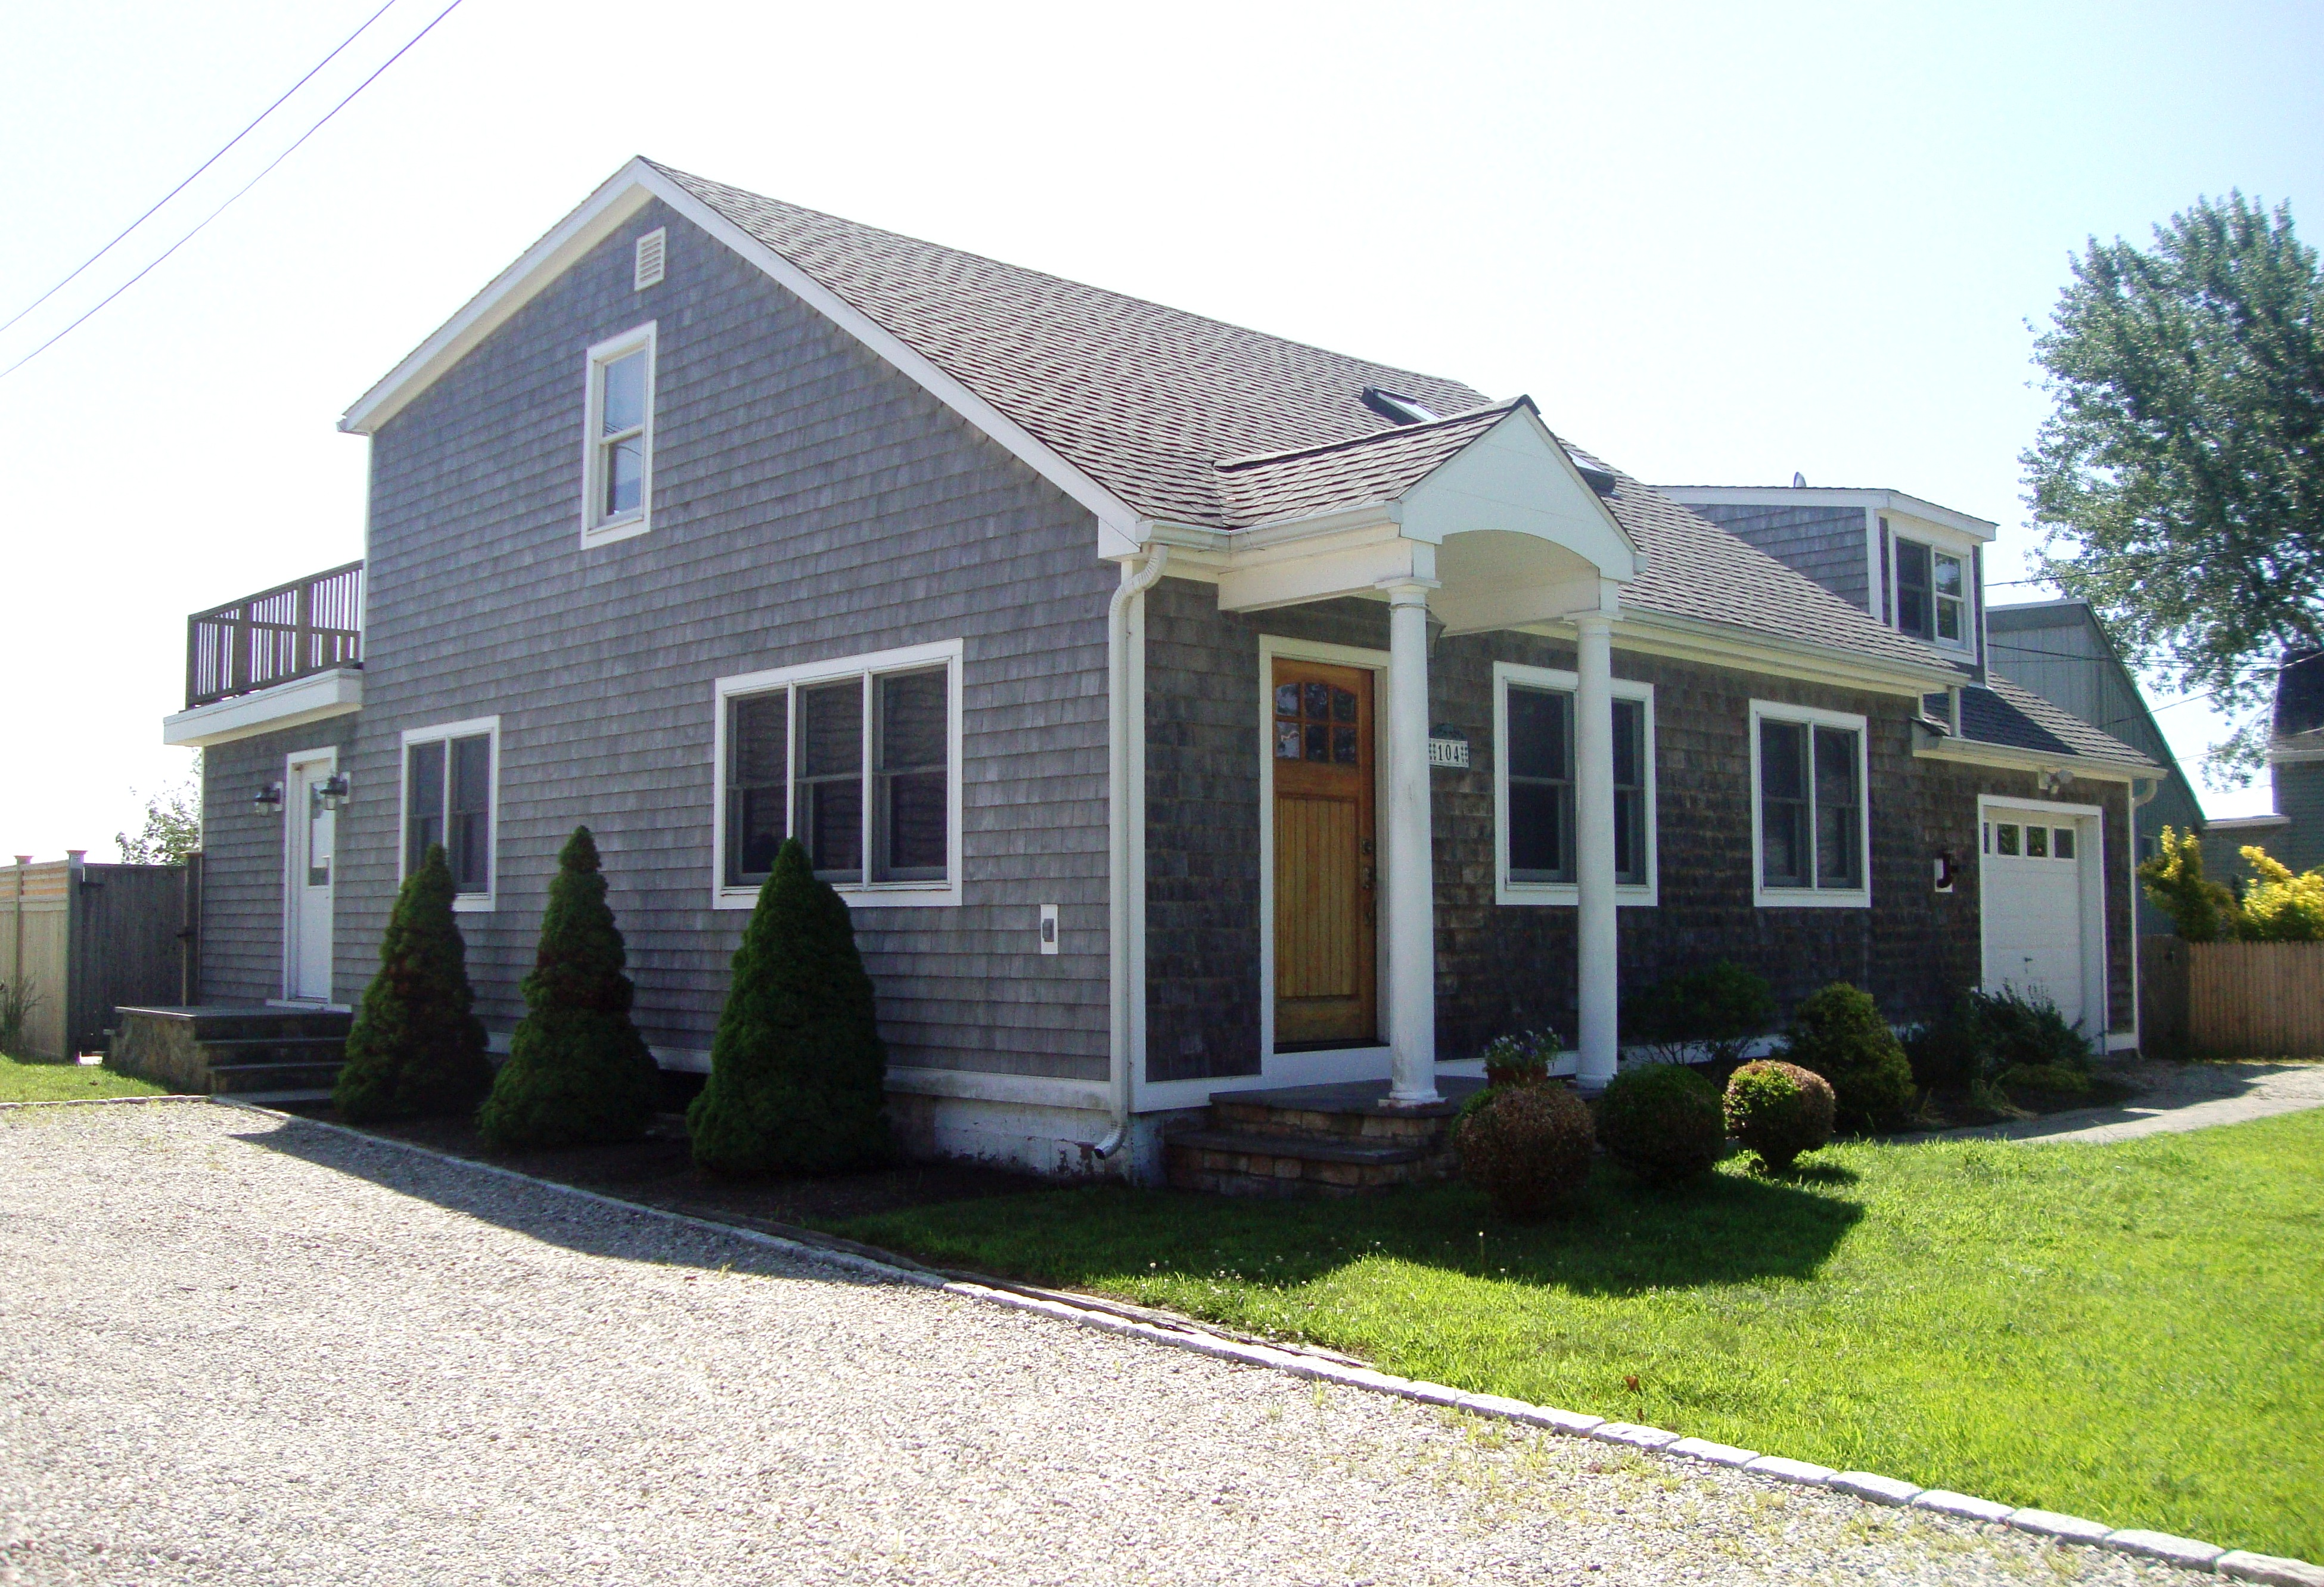 Single Family Home for Sale at 104 Seaside Ave Guilford, Connecticut 06437 United States